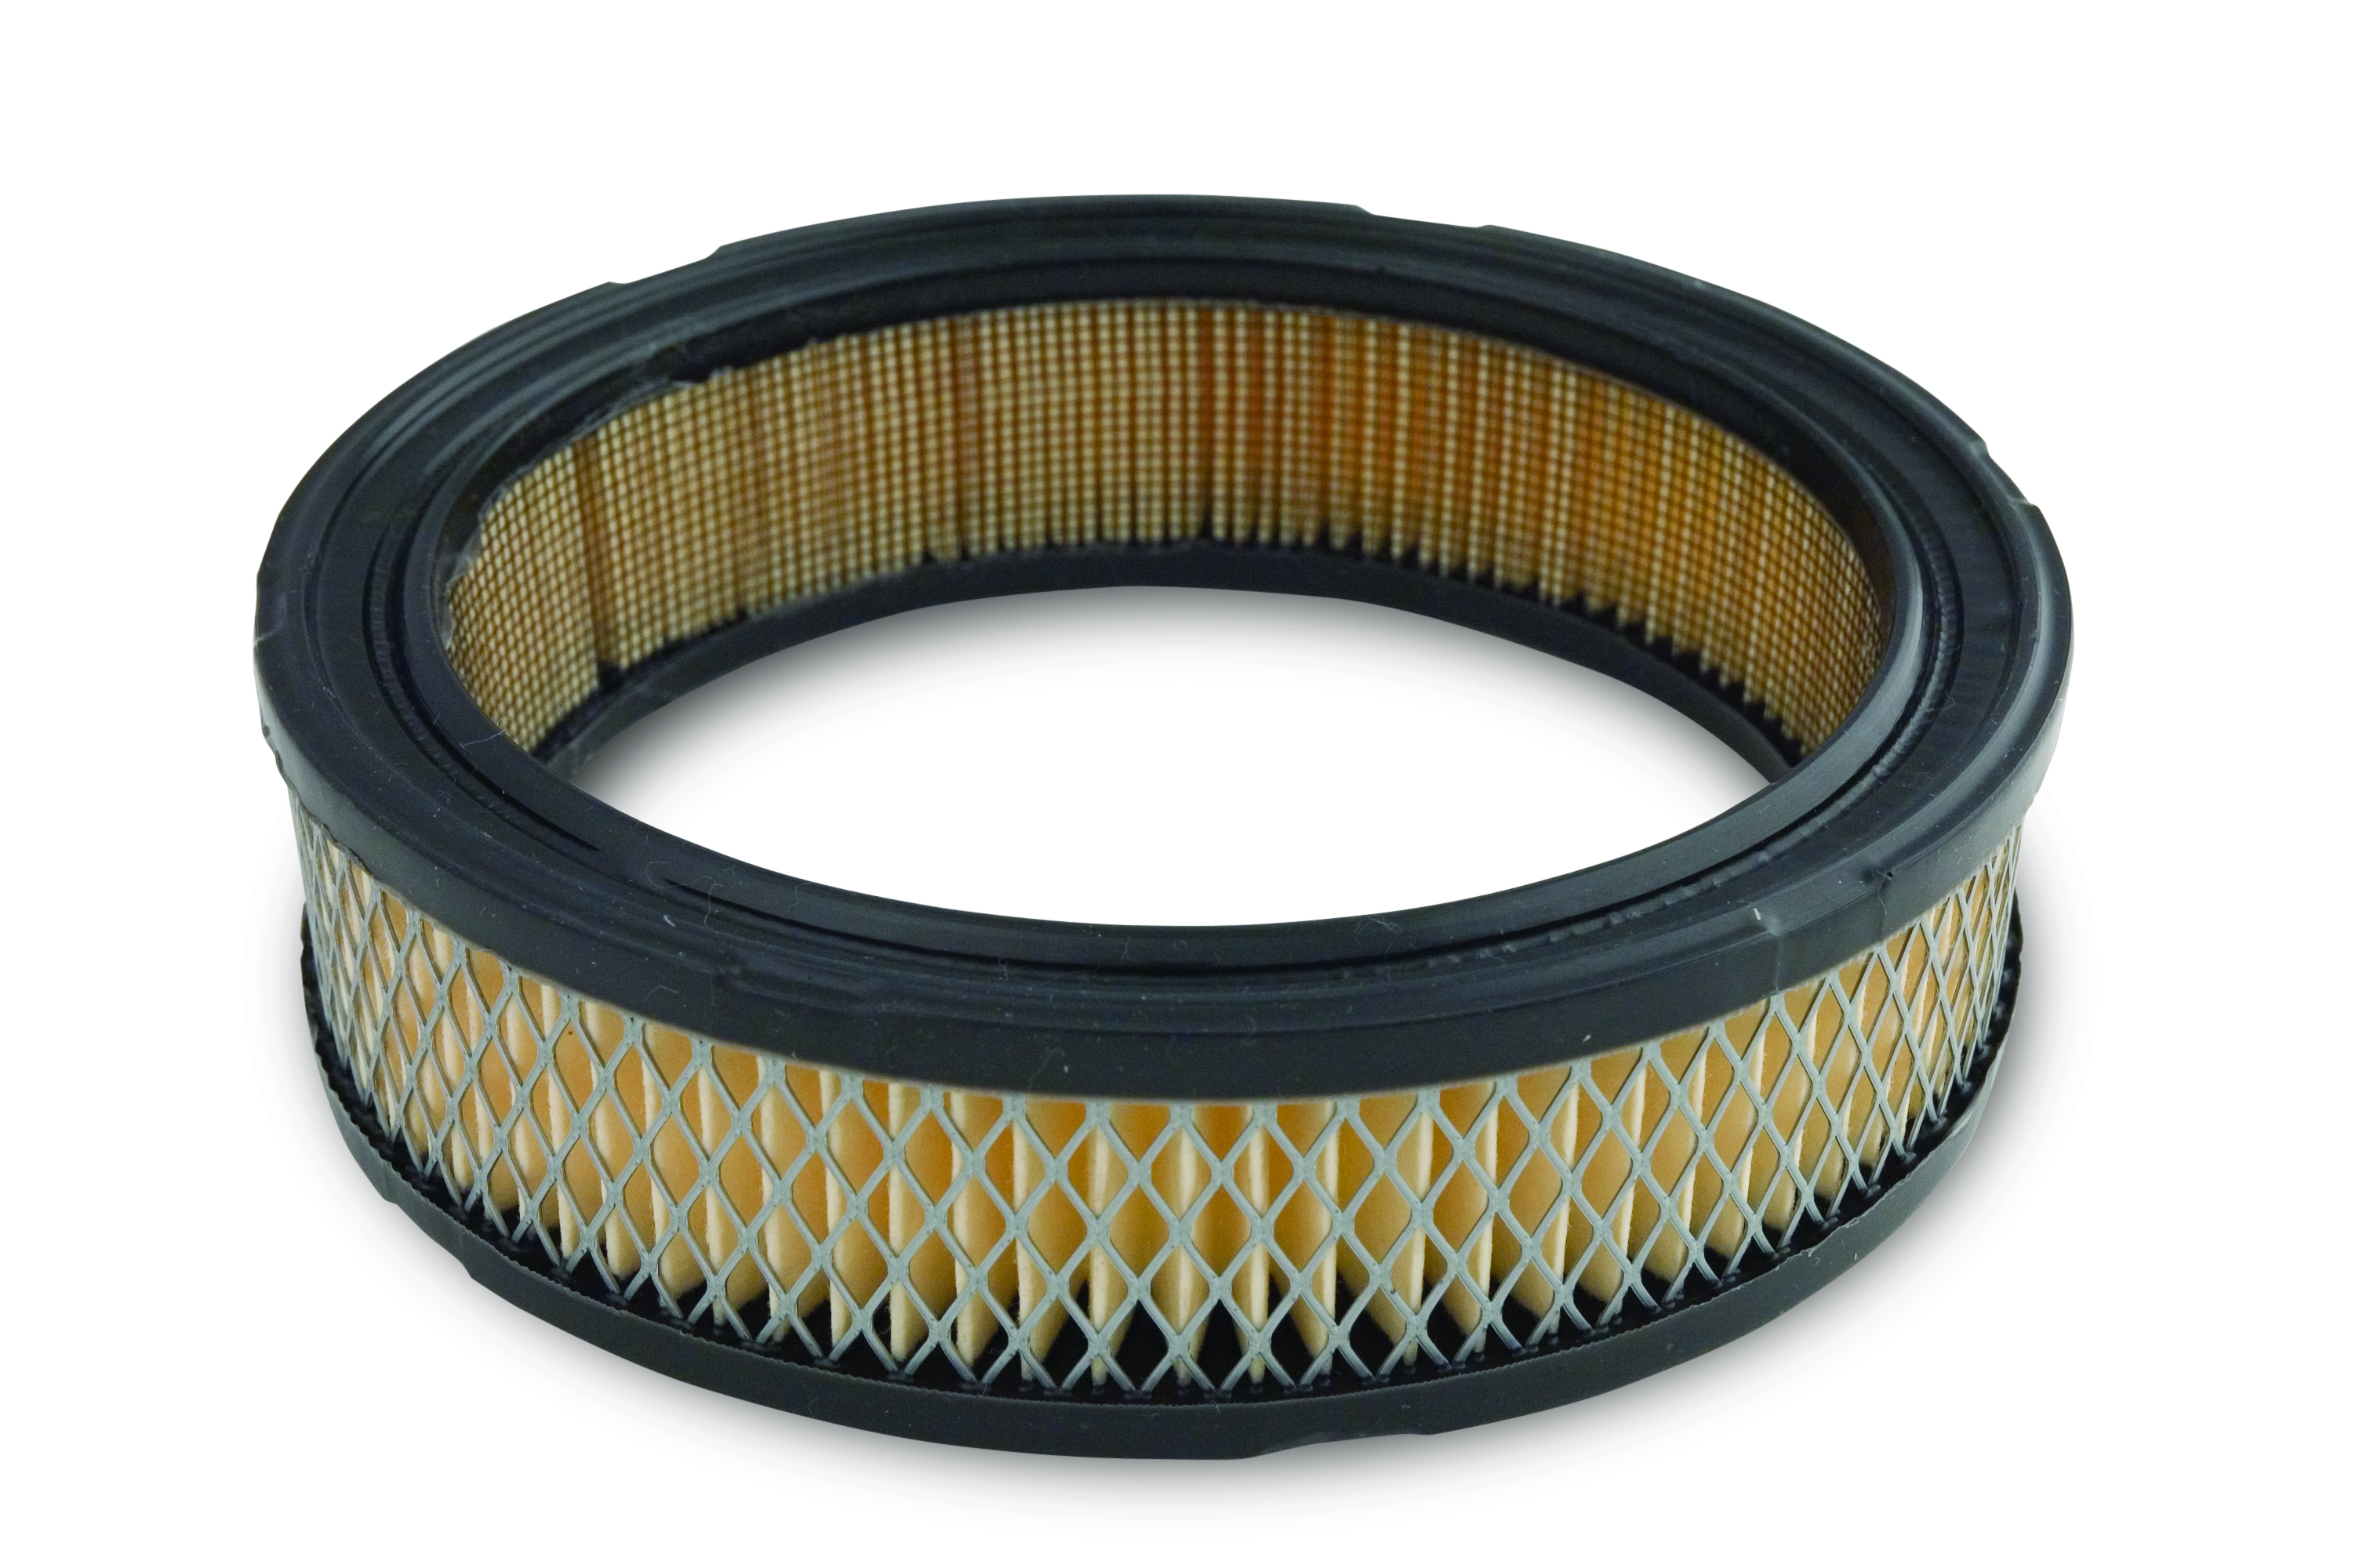 Air Filter Shop Pack For Kohler # 47-083-01-S1 4708301S1